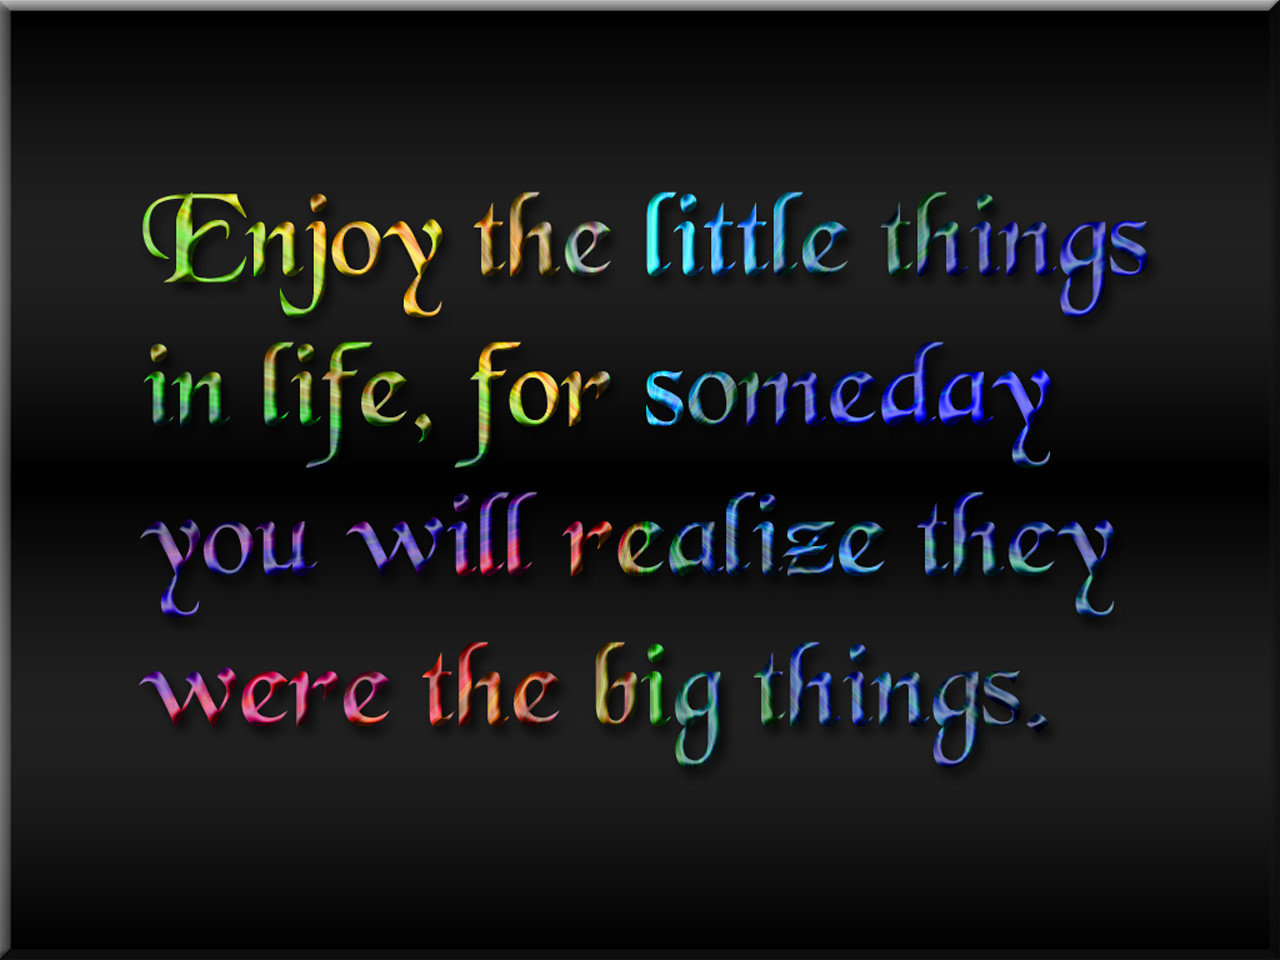 Free Download Saying Wallpaper Id - Life Quotes Wallpaper Download - HD Wallpaper